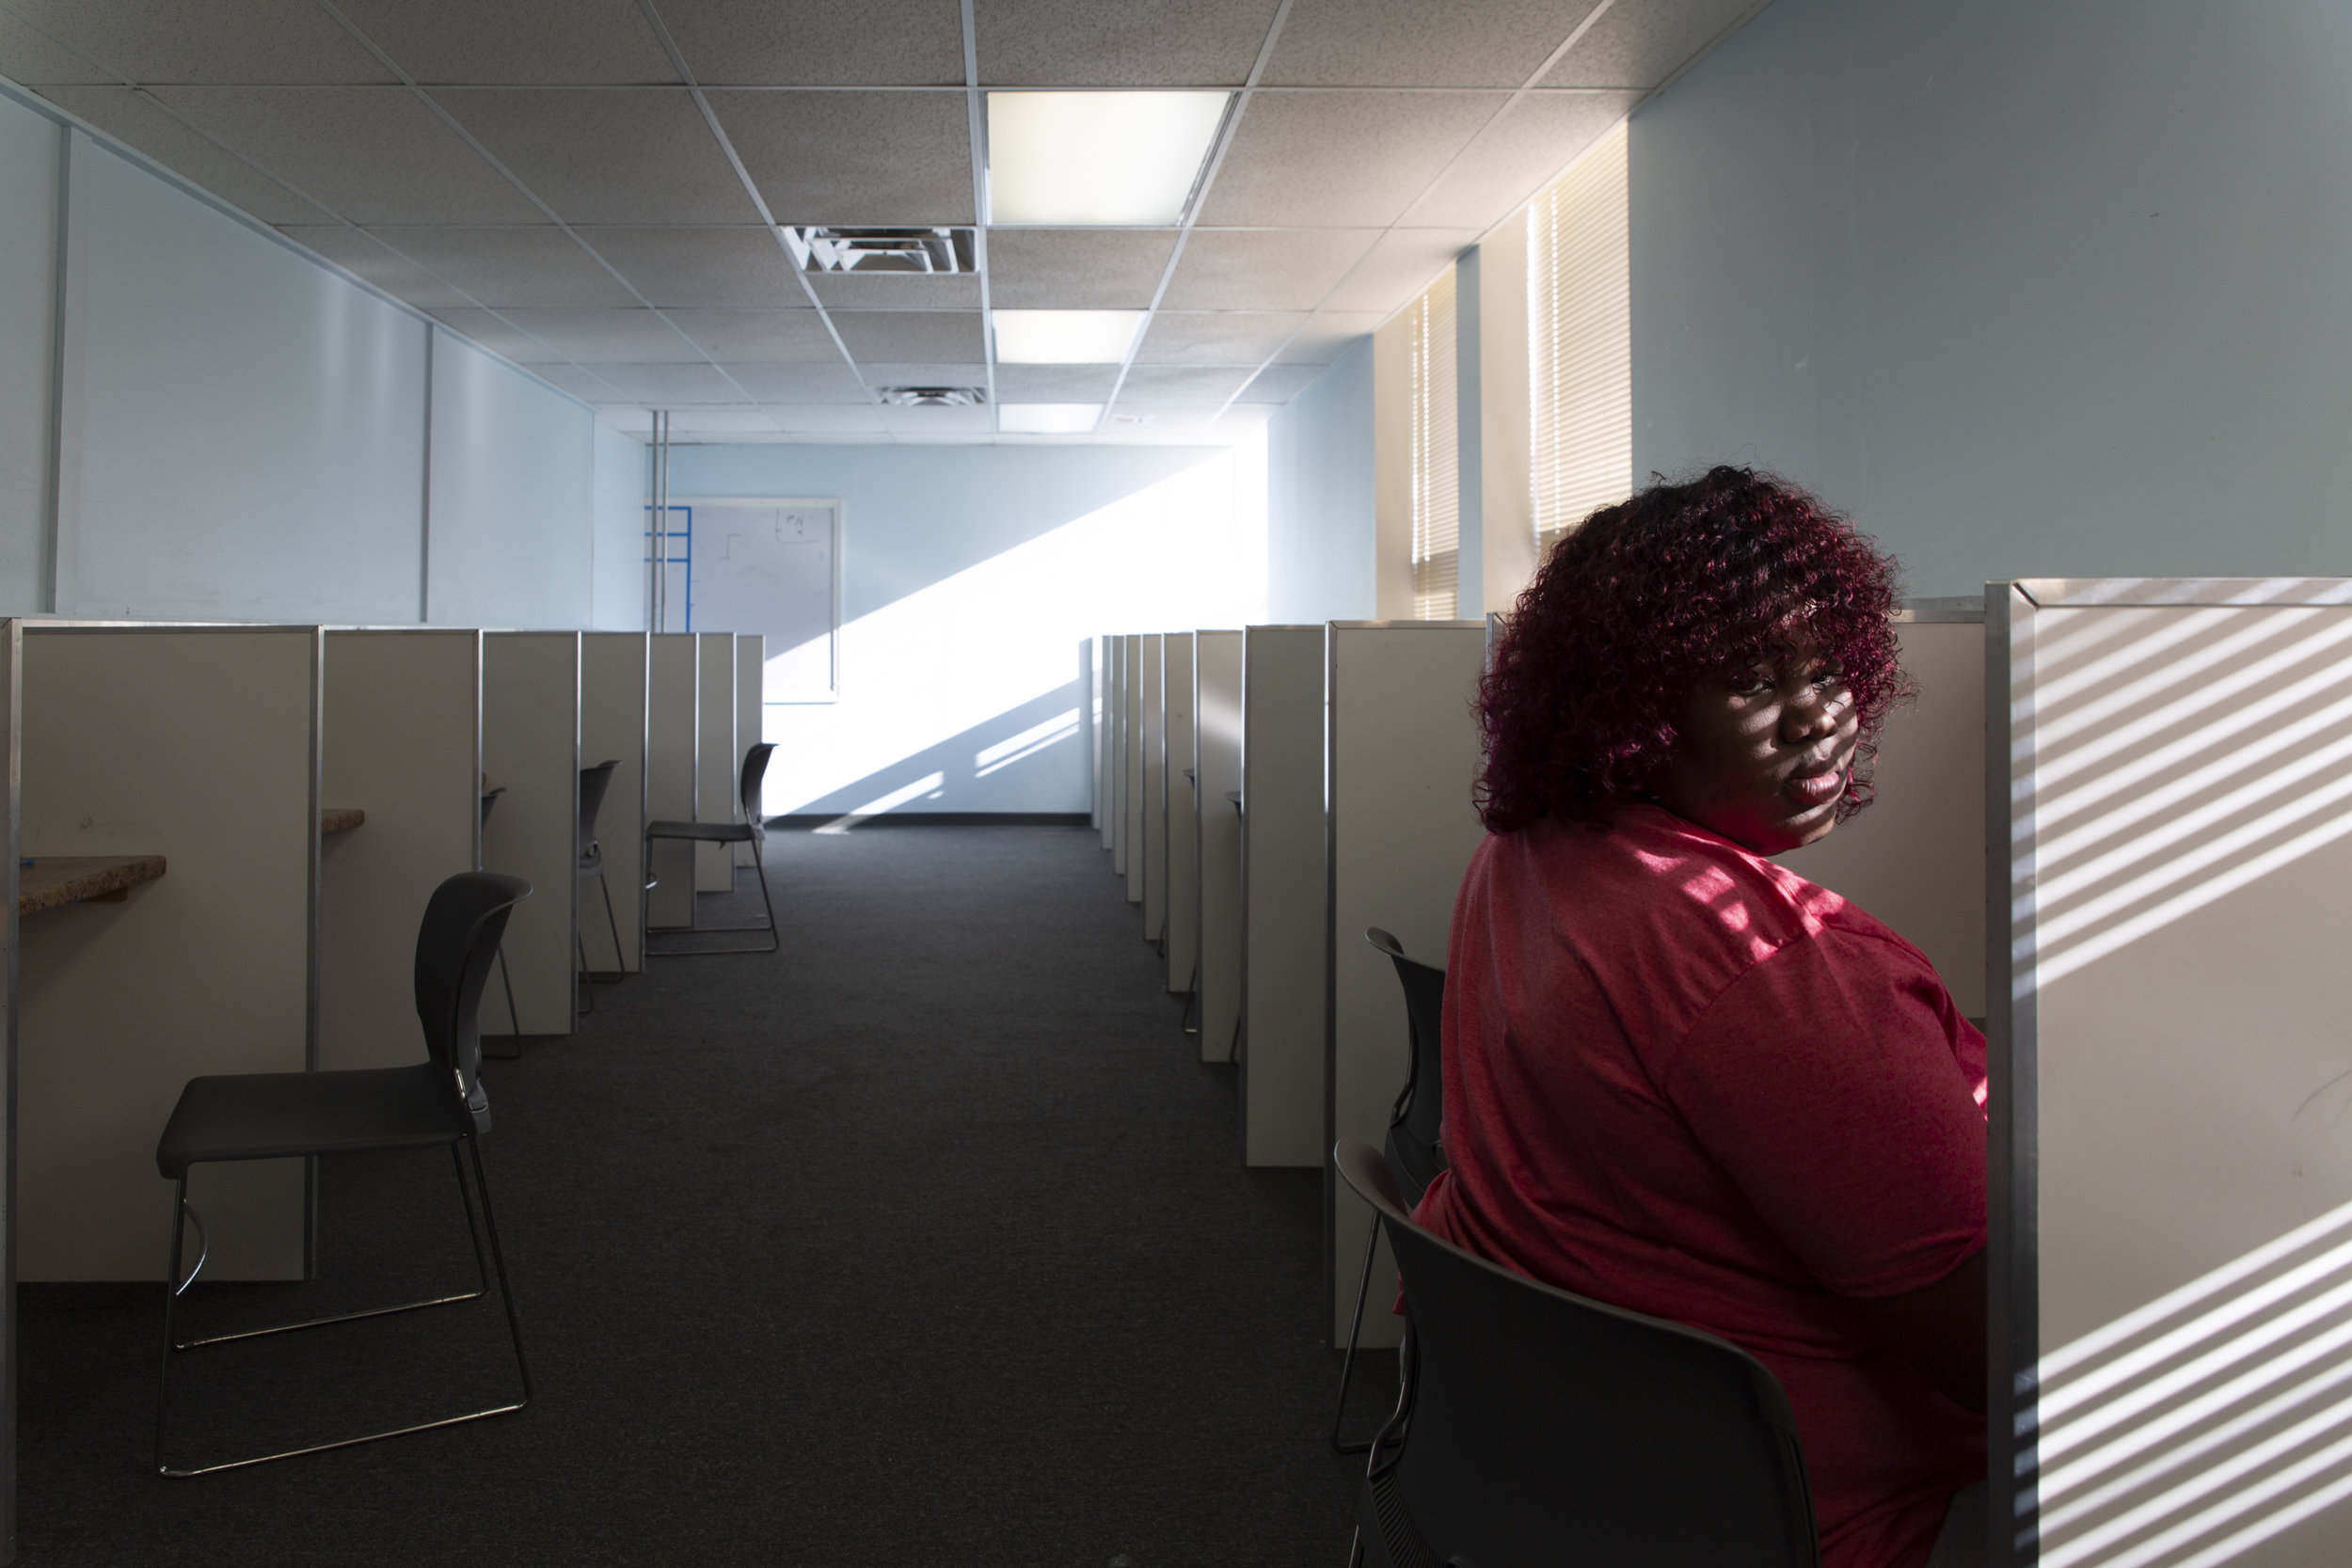 """""""I hate math,"""" Mikelah mumbled after completing a computerized test at Focus Learning Academy on Tuesday, Dec. 18, 2018. The school allows students to pace their own learning, which gives Mikelah the flexibility to raise Isaiah, but also lacks the structured classroom setting of a typical high school."""